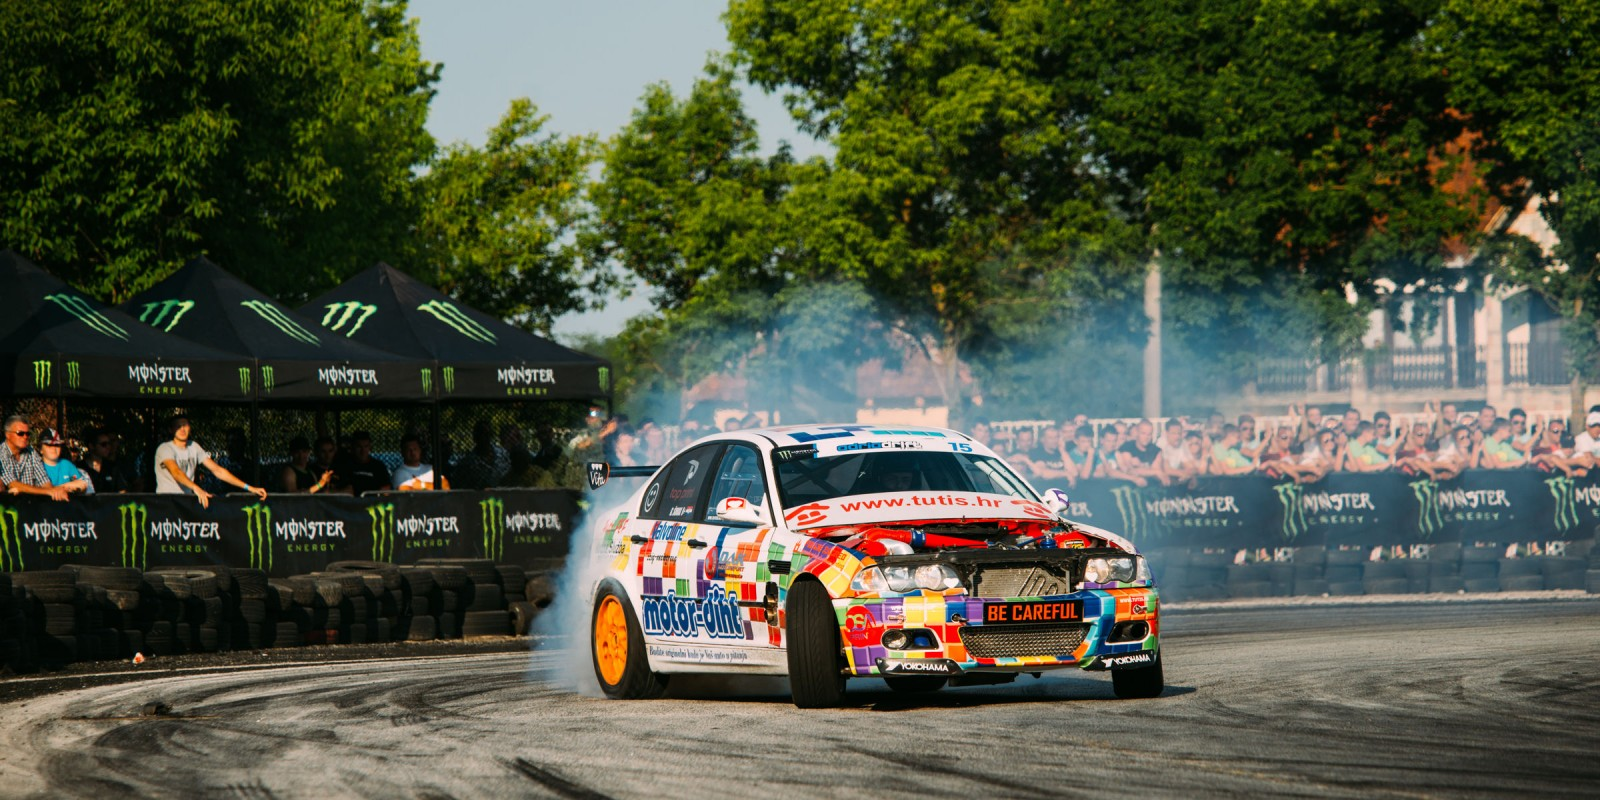 Monster Energy at the Adria Drift Series in Cacak, Serbia